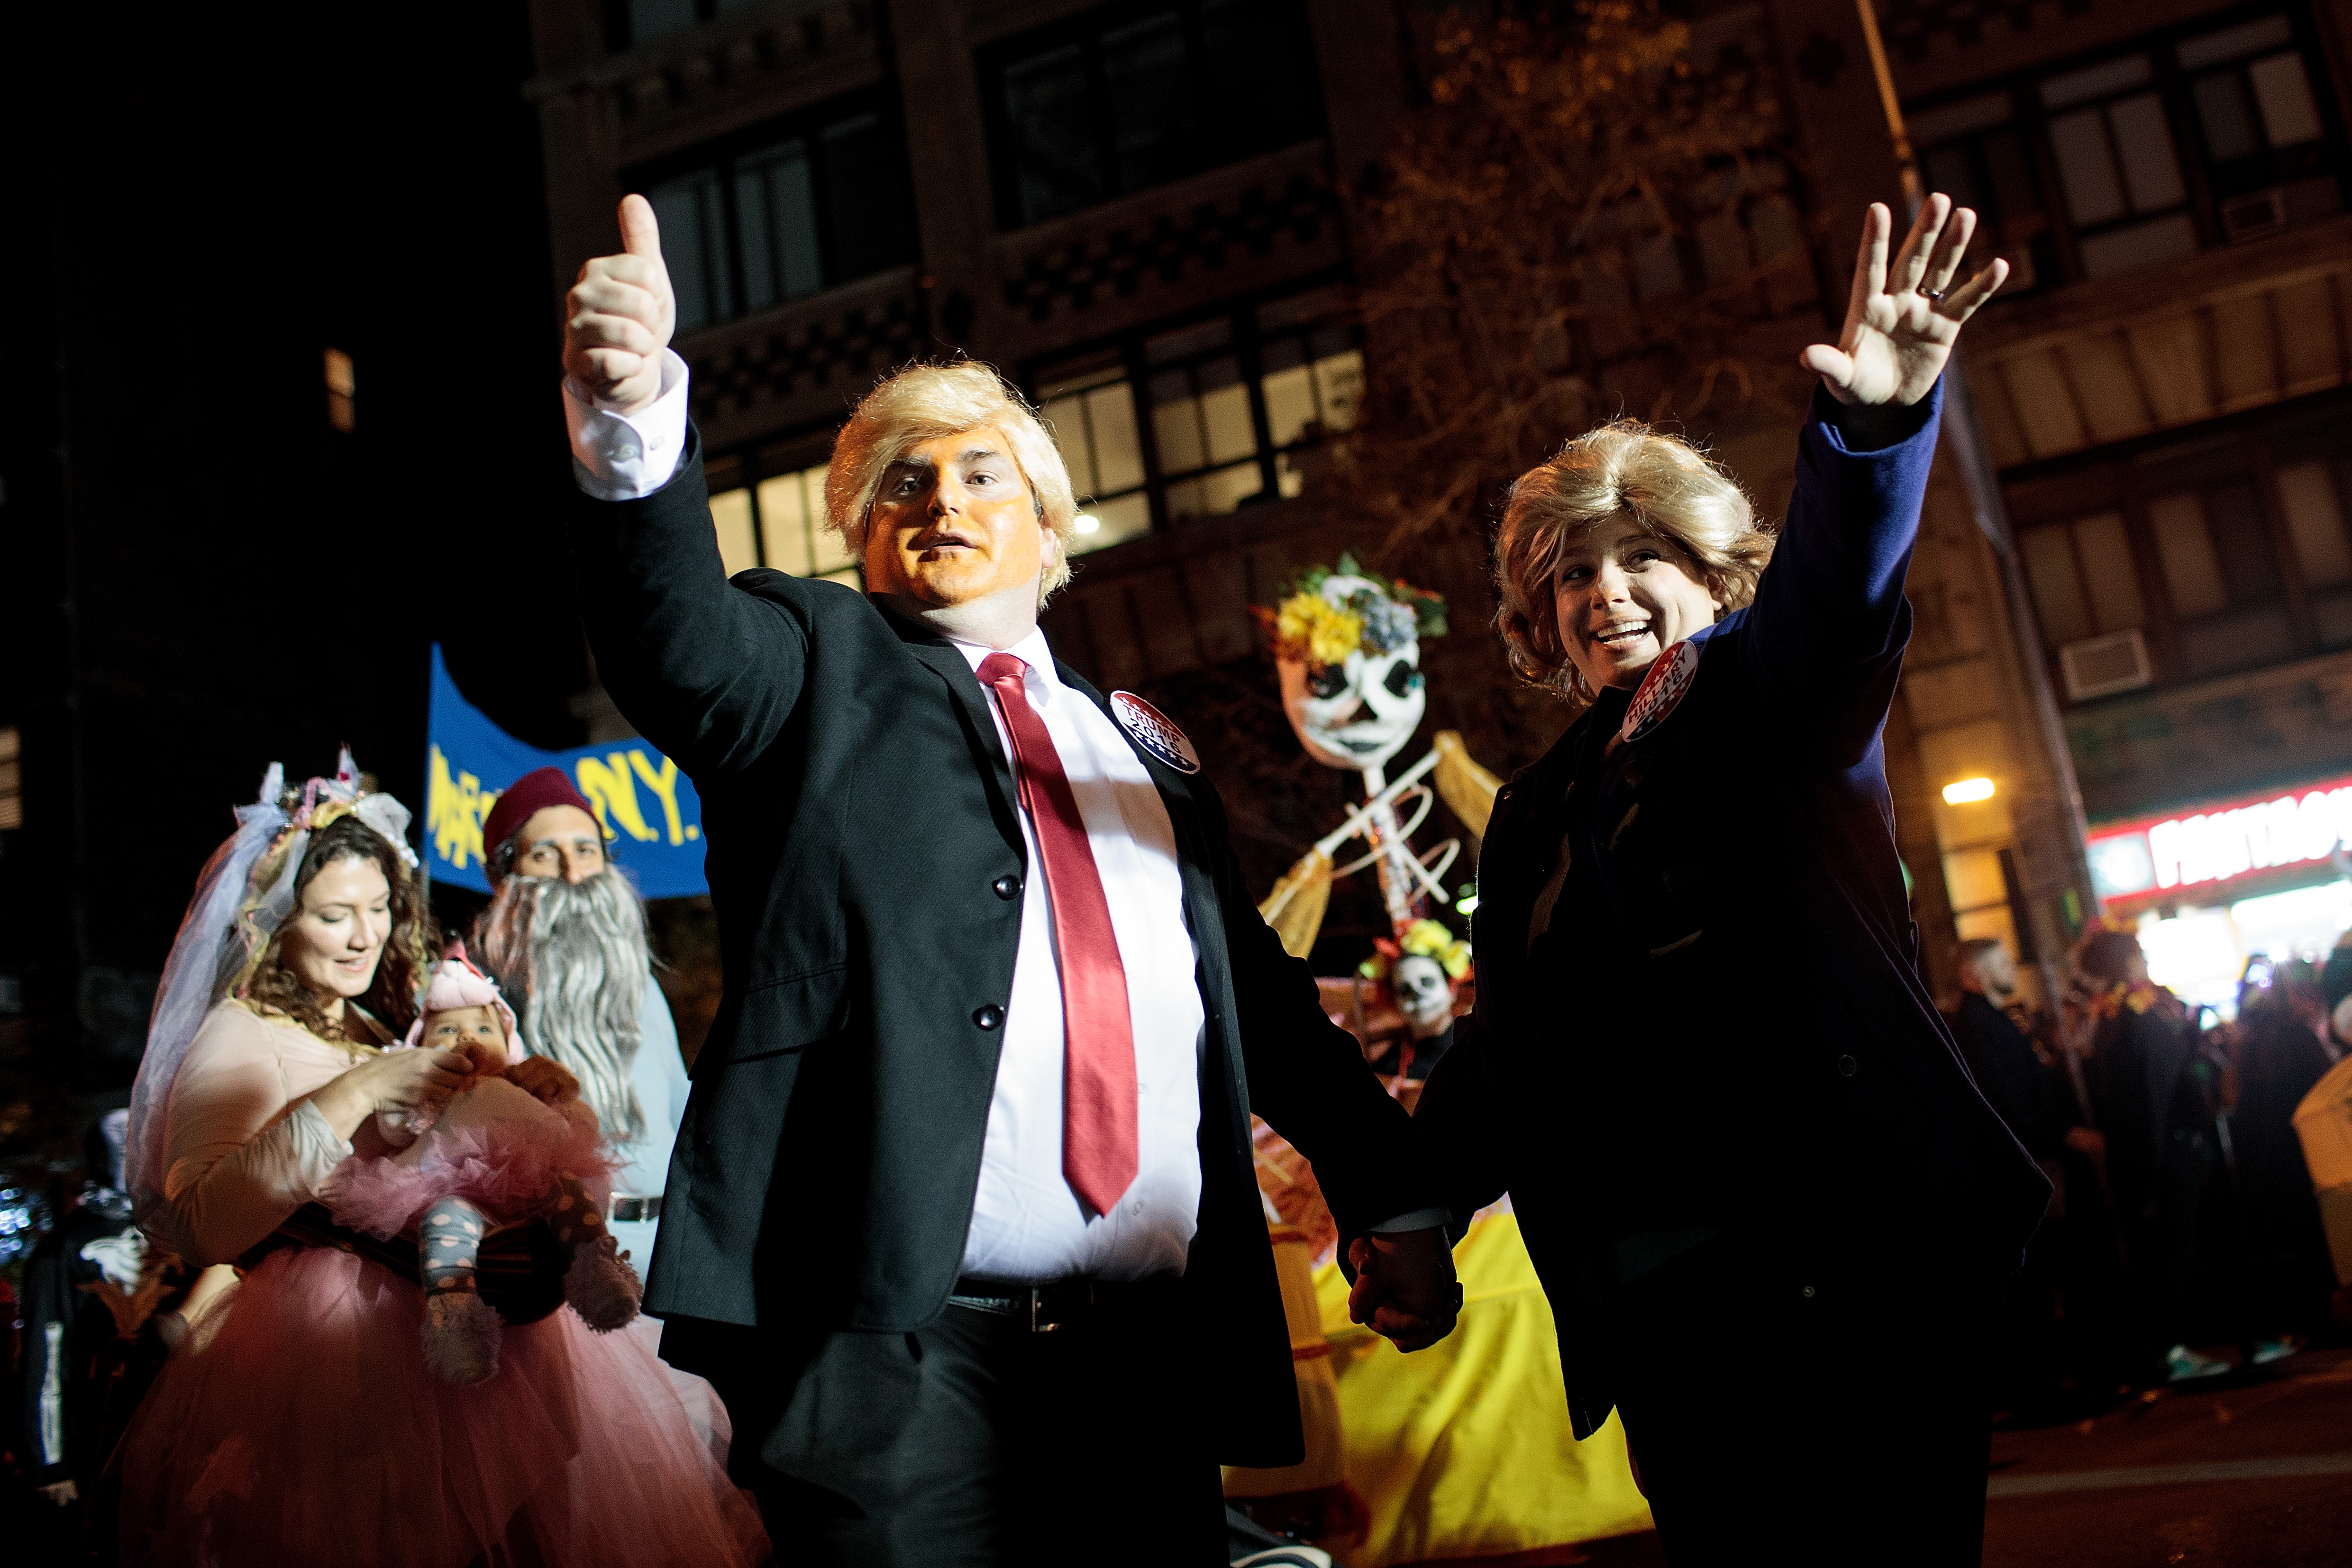 donald trump and hillary clinton costumes at the village halloween parade in nyc photo by drew